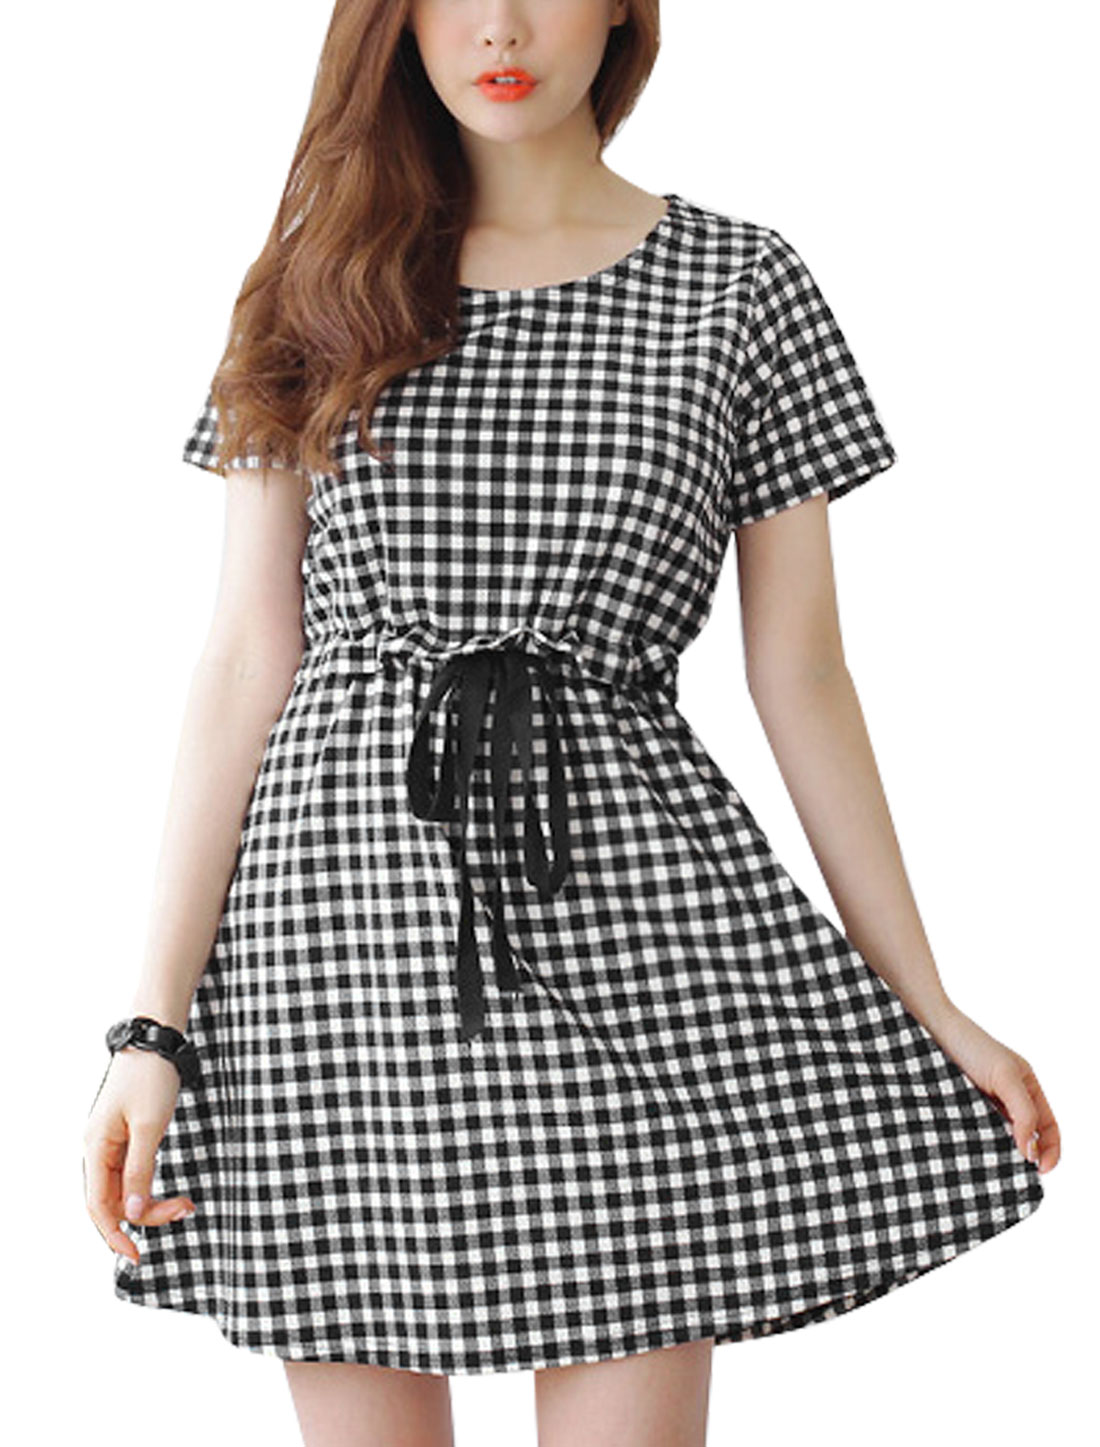 Woman Plaids Drawstring Waist Round Neck Short Sleeves A Line Dress Black White S